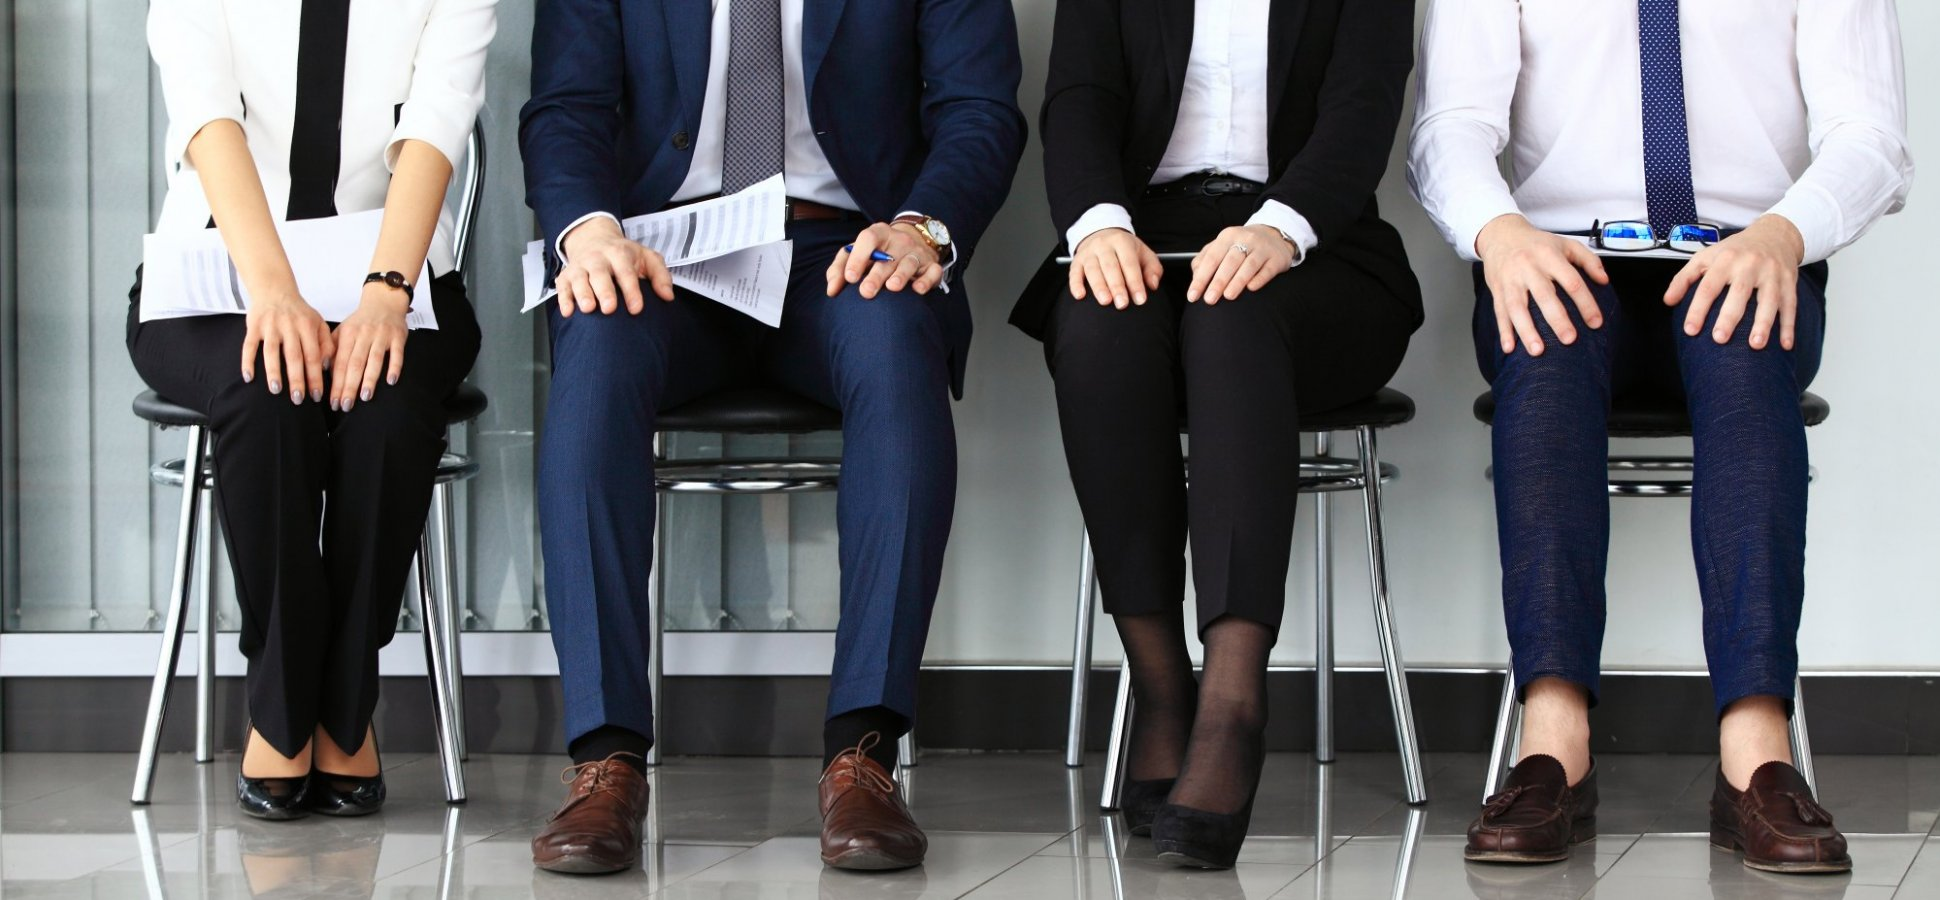 19 Interview Questions That Cut Through the BS to Reveal a Great Hire